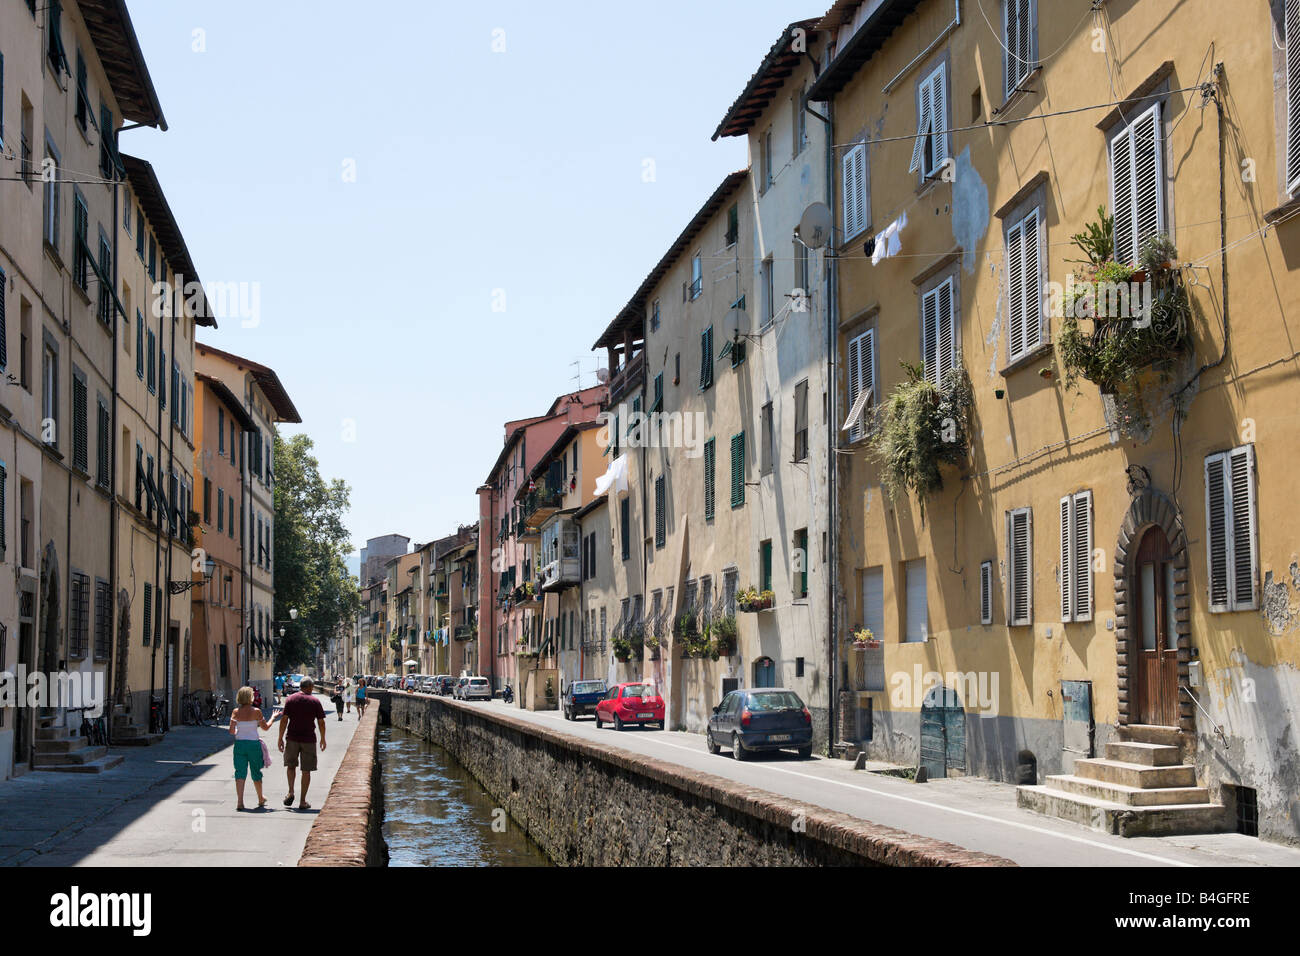 Via del Fosso in the old city, Lucca, Tuscany, Italy - Stock Image